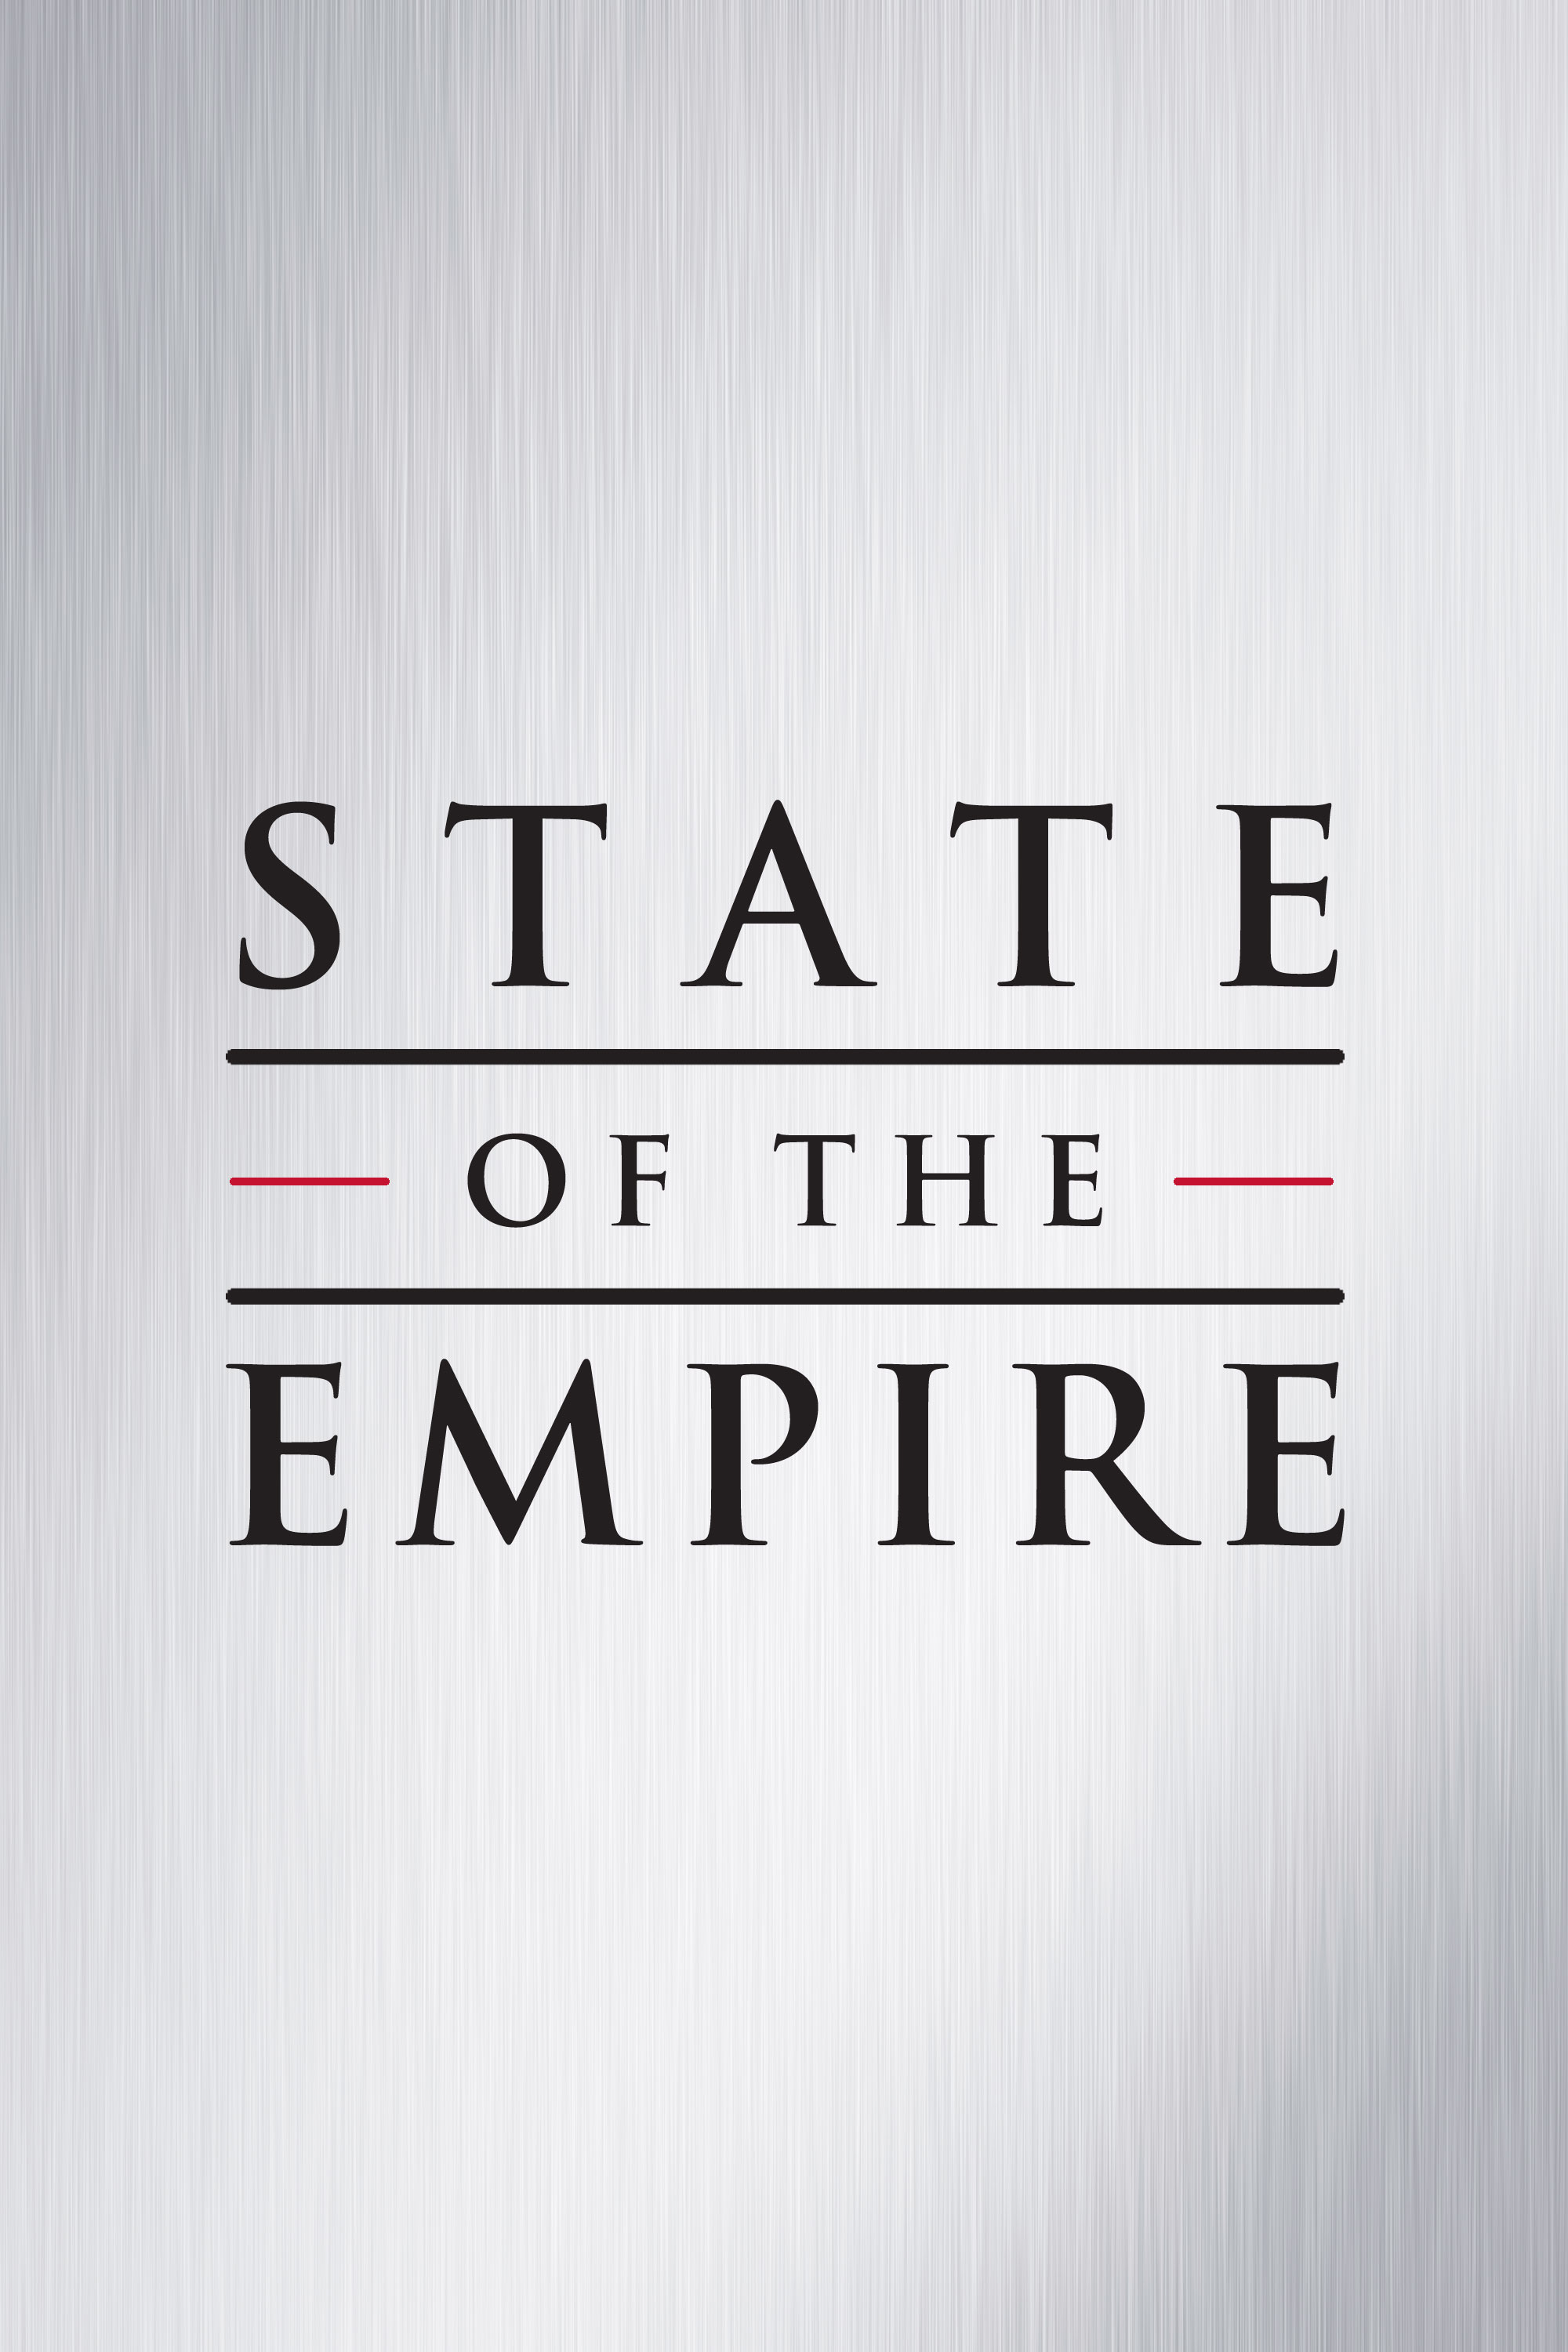 State of the empire